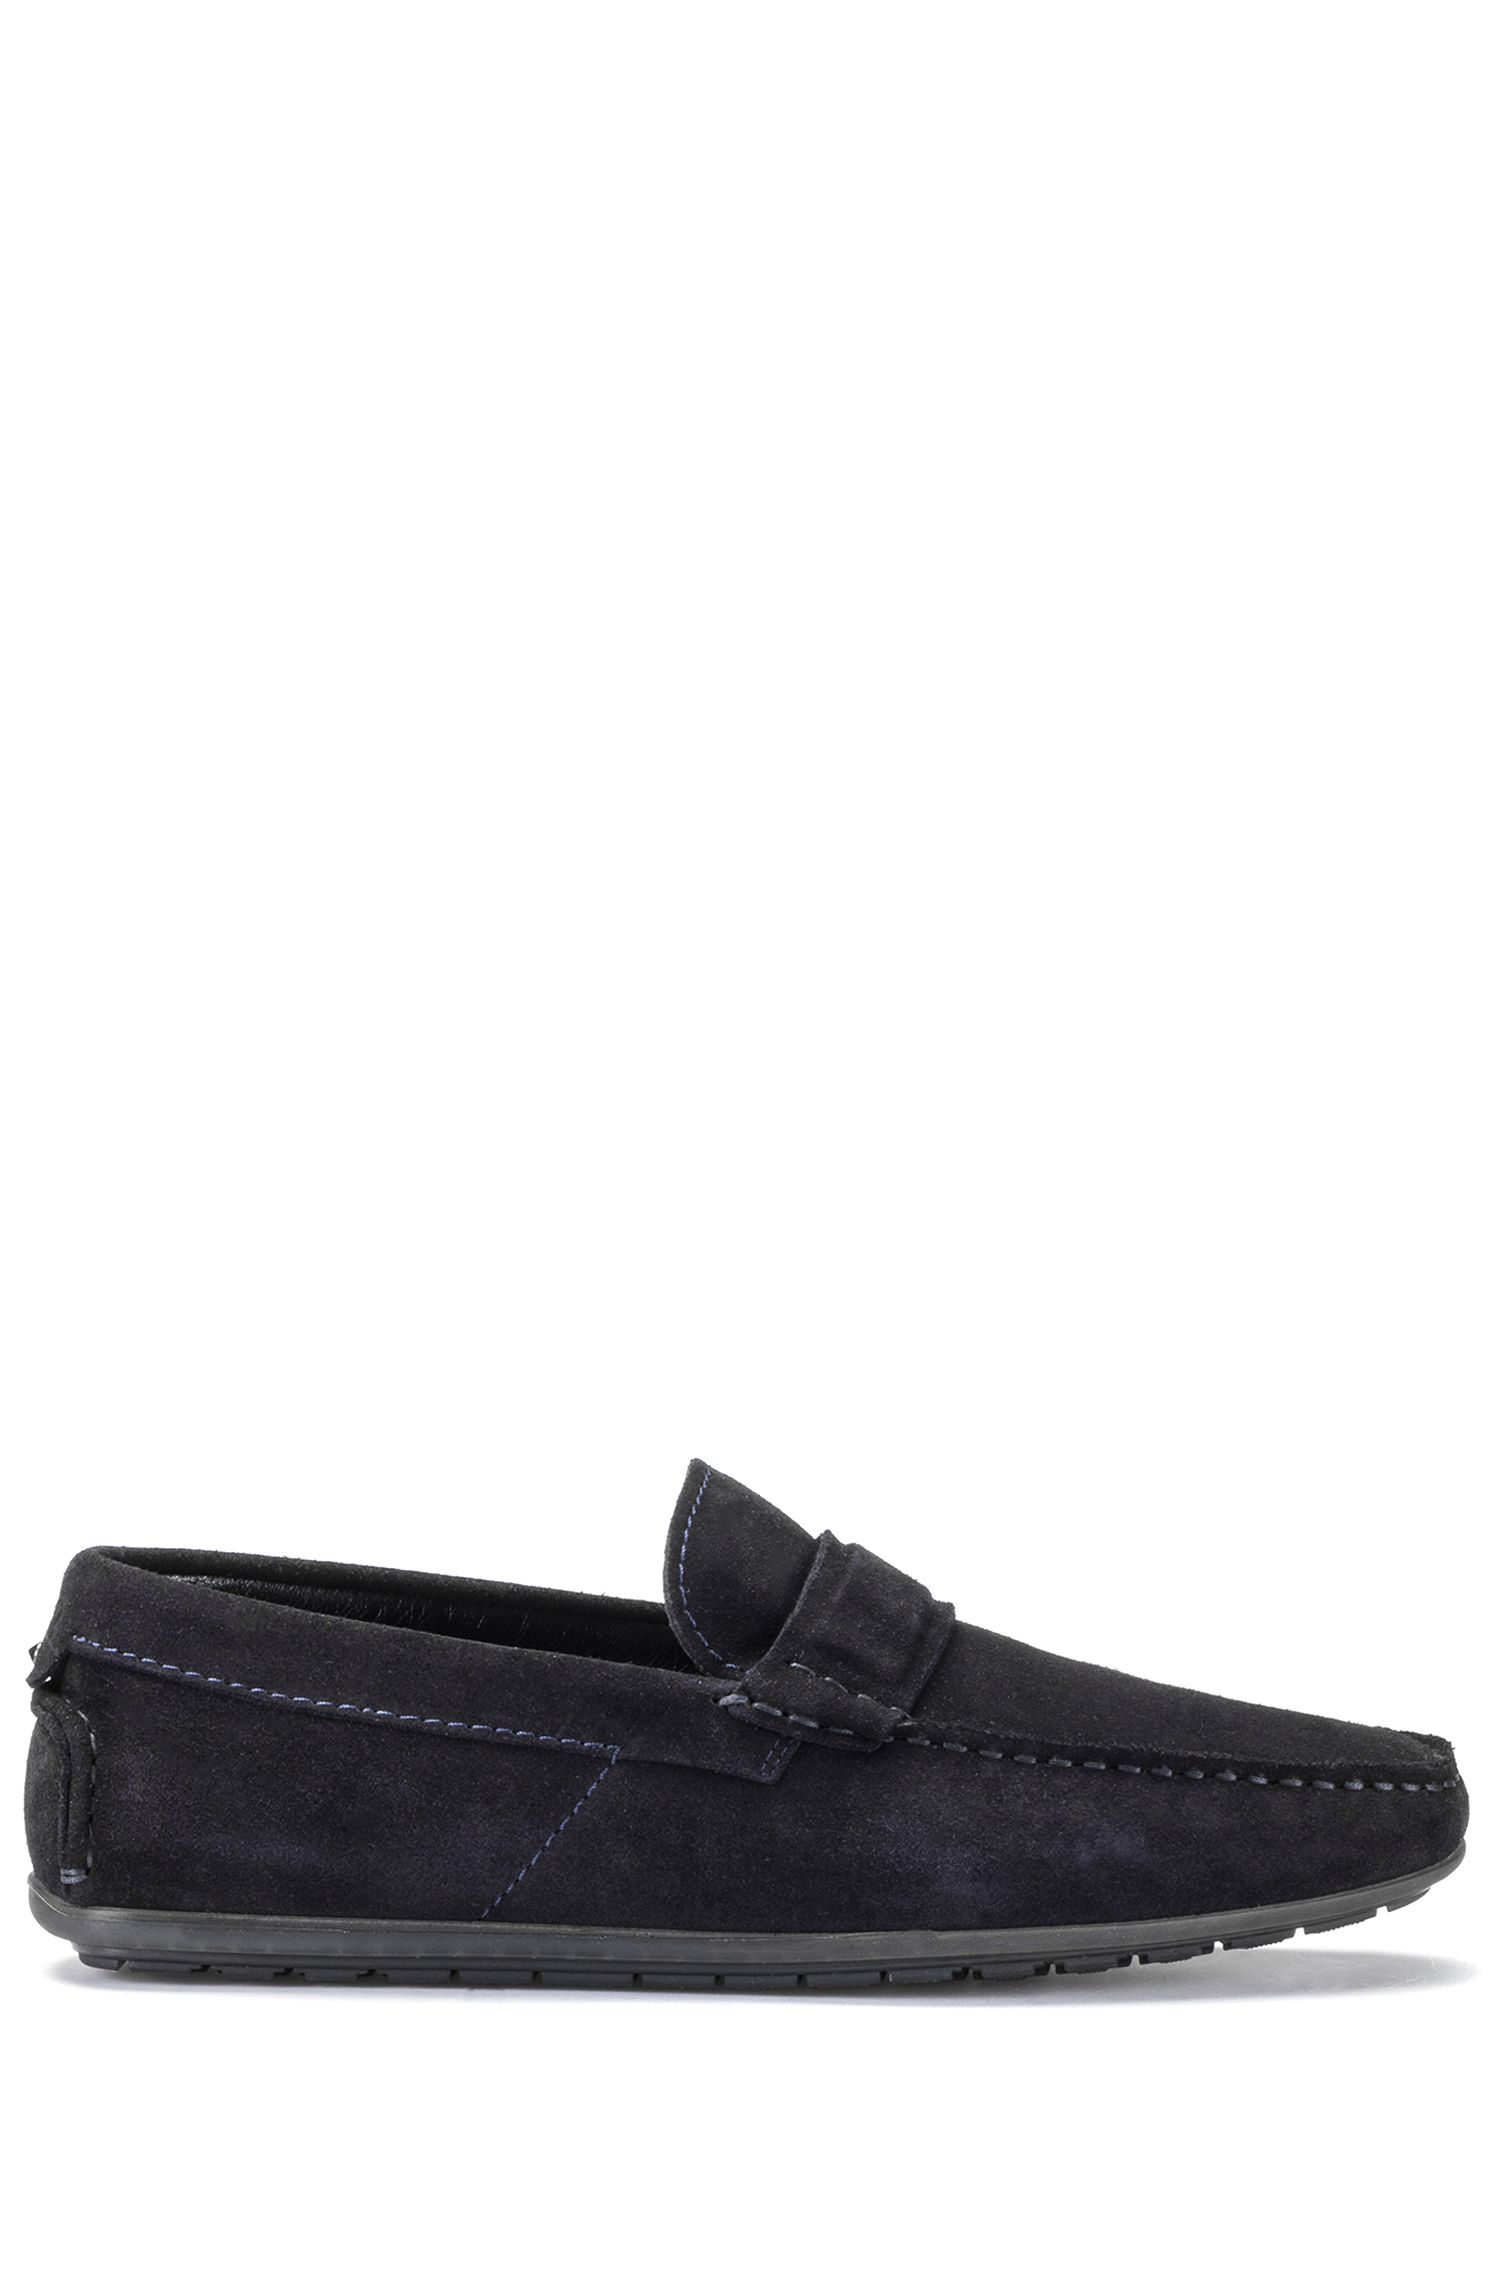 Mocassini slip-on in pelle scamosciata